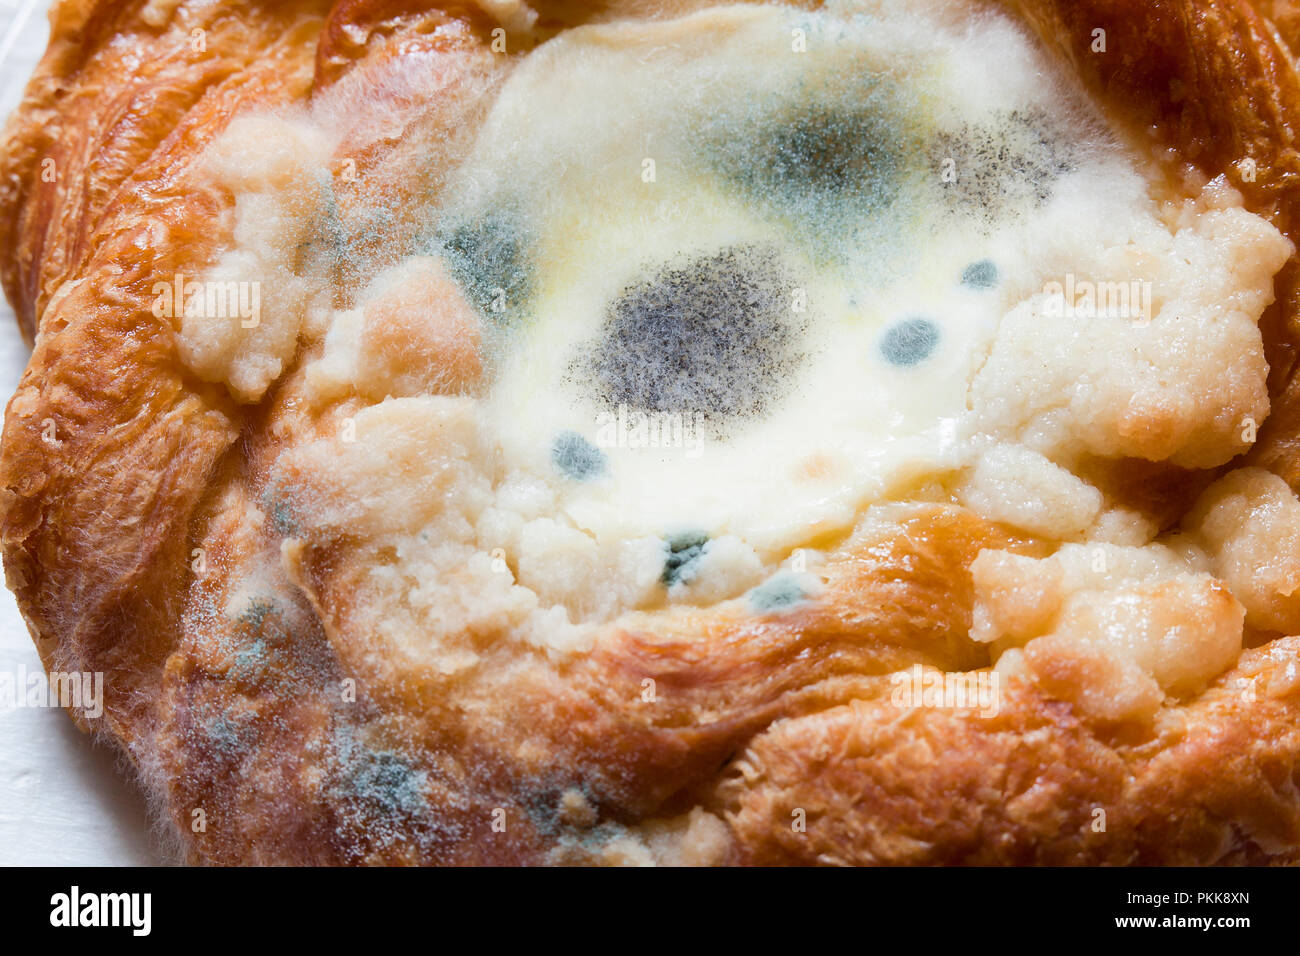 Mold growing on cheese danish (moldy food, mouldy food, food mold) - Stock Image